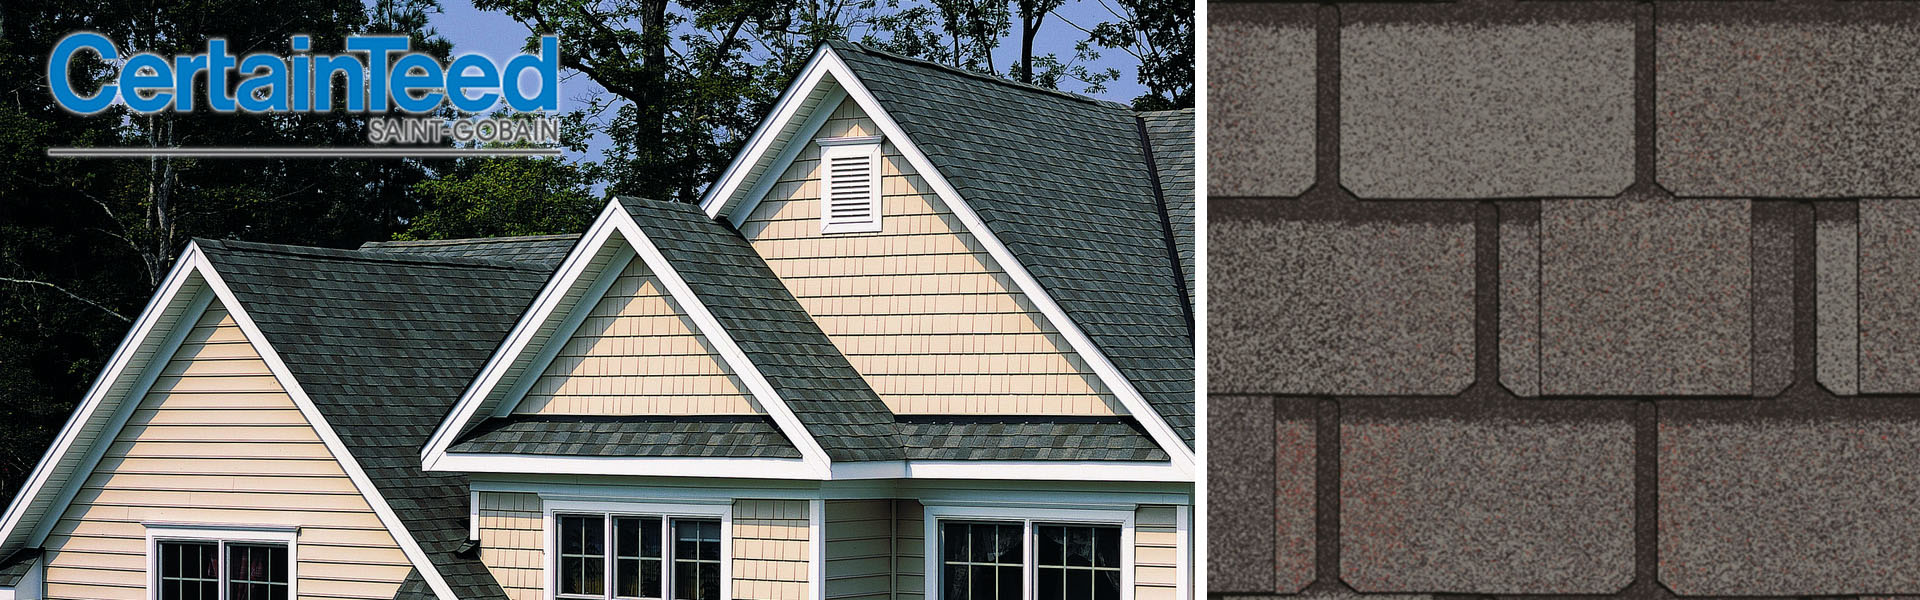 Aegis Roofing Images